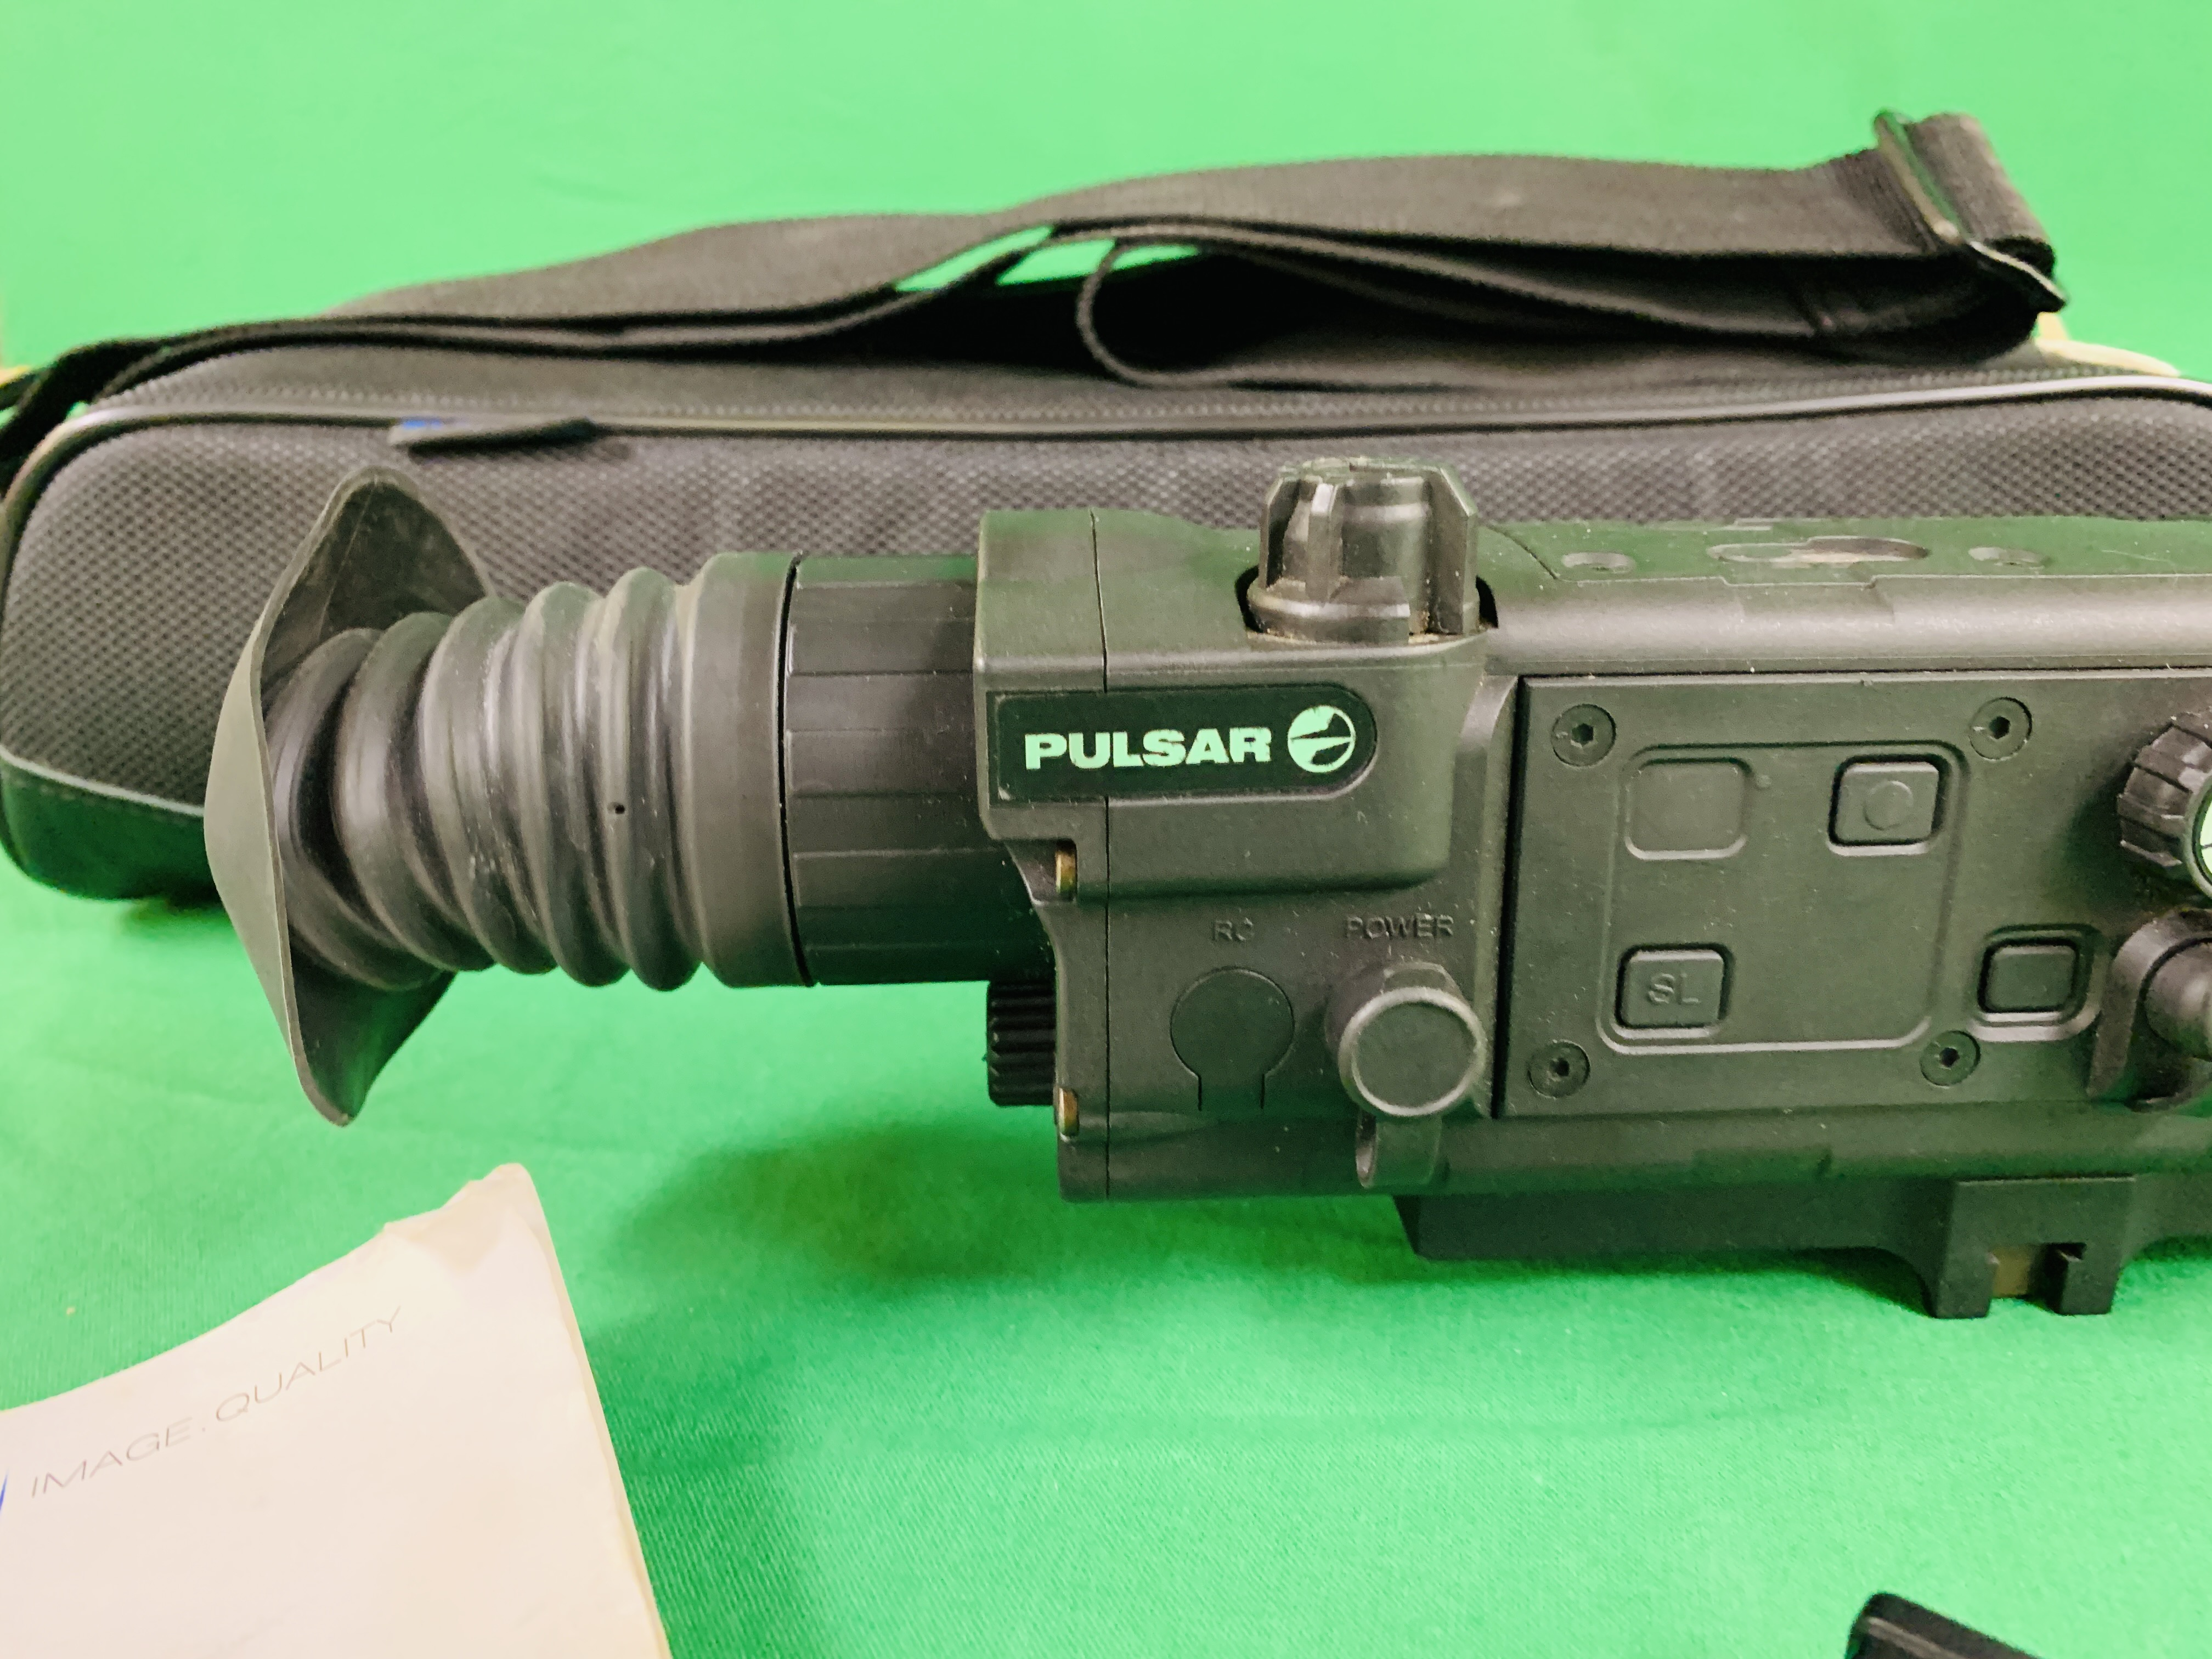 PULSAR N750 DIGI SIGHT RIFLE SCOPE COMPLETE WITH SONY TELE CONVERSION LENS ALONG WITH INSTRUCTION - Image 2 of 8